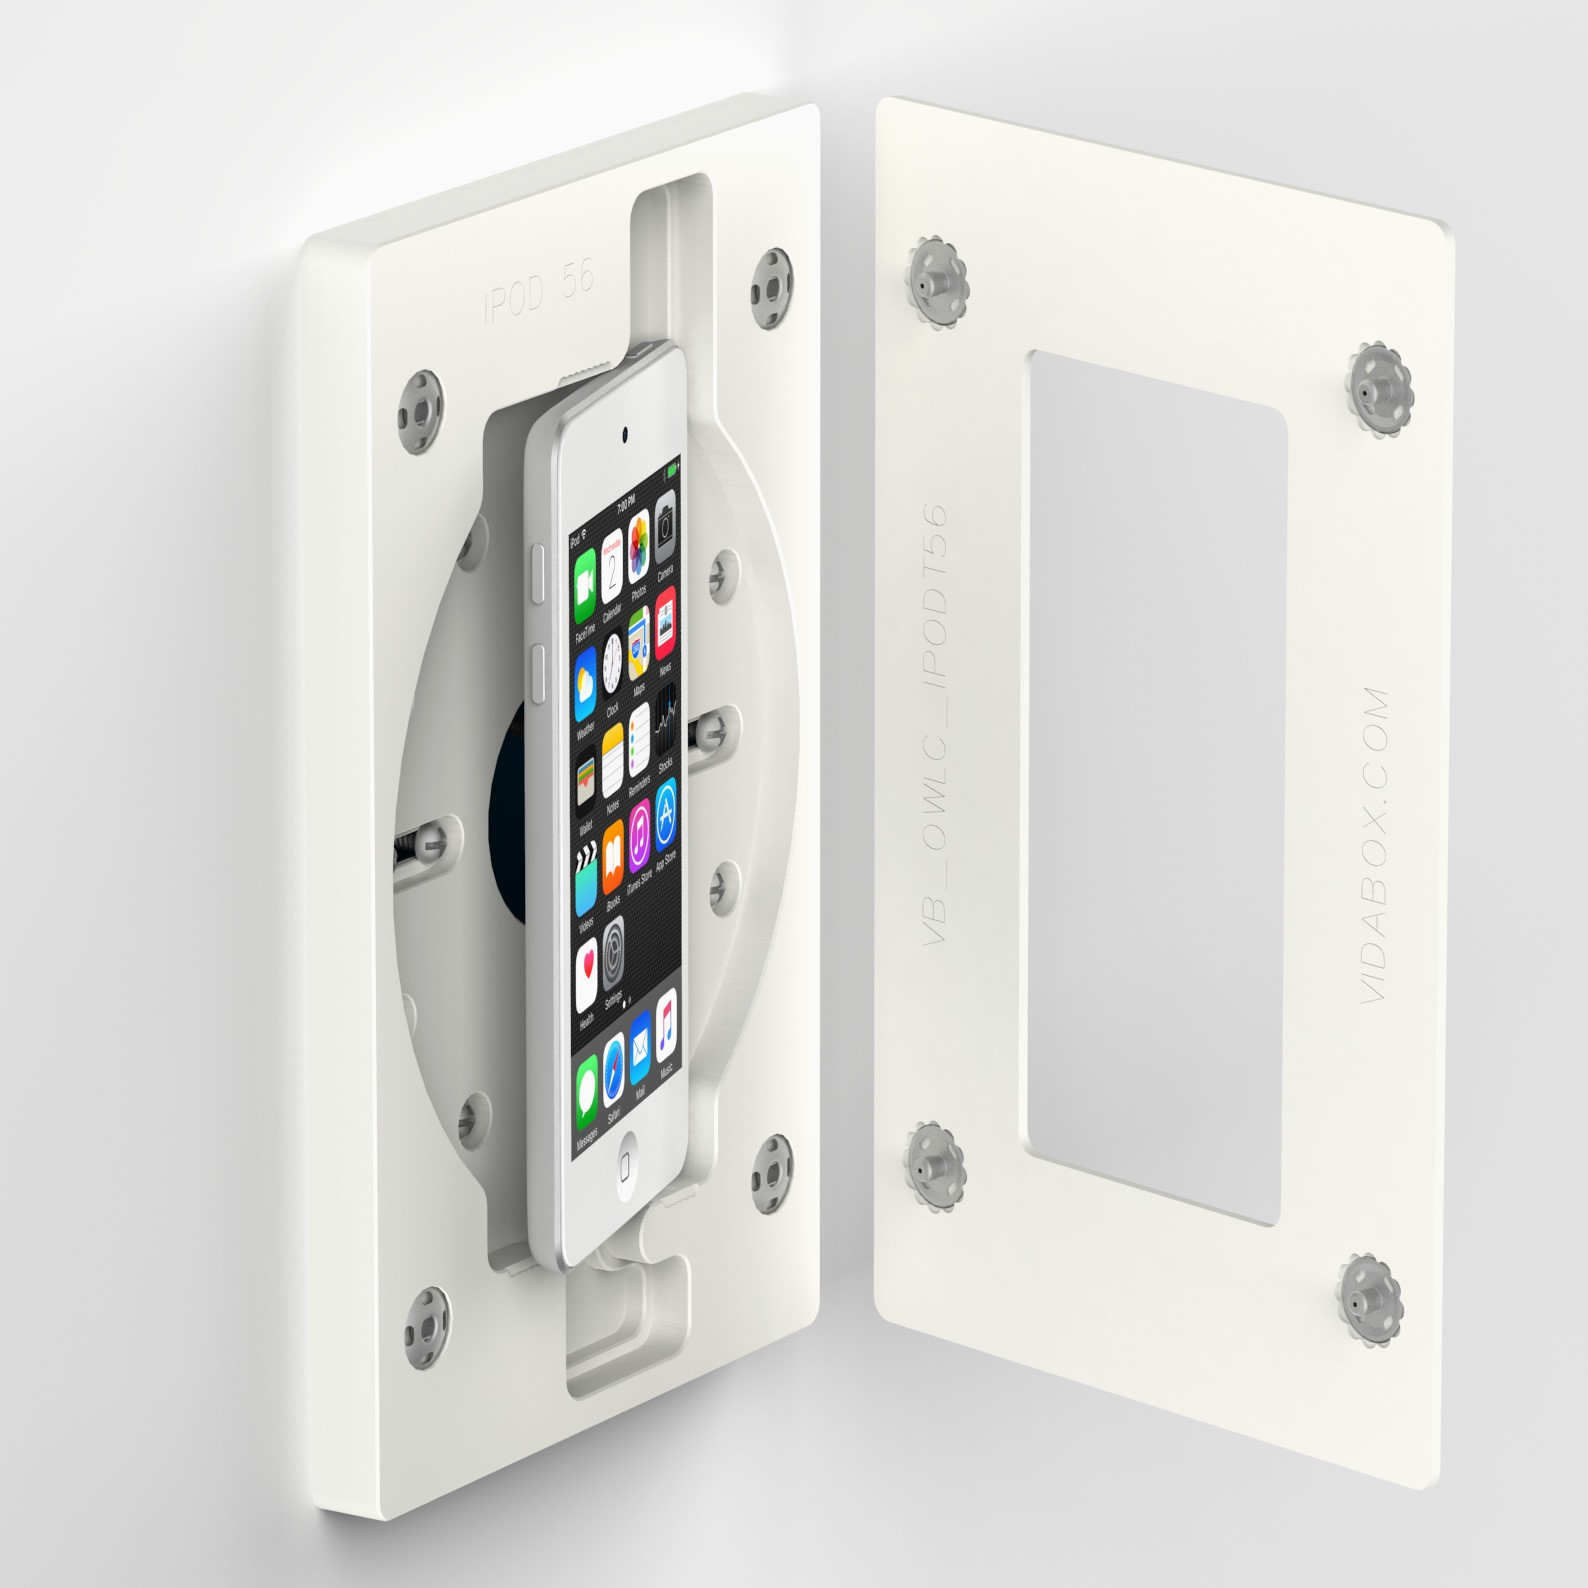 Ipod Touch Mounted Onto Us Gangbox Vidamount On Wall Enclosure Mount White